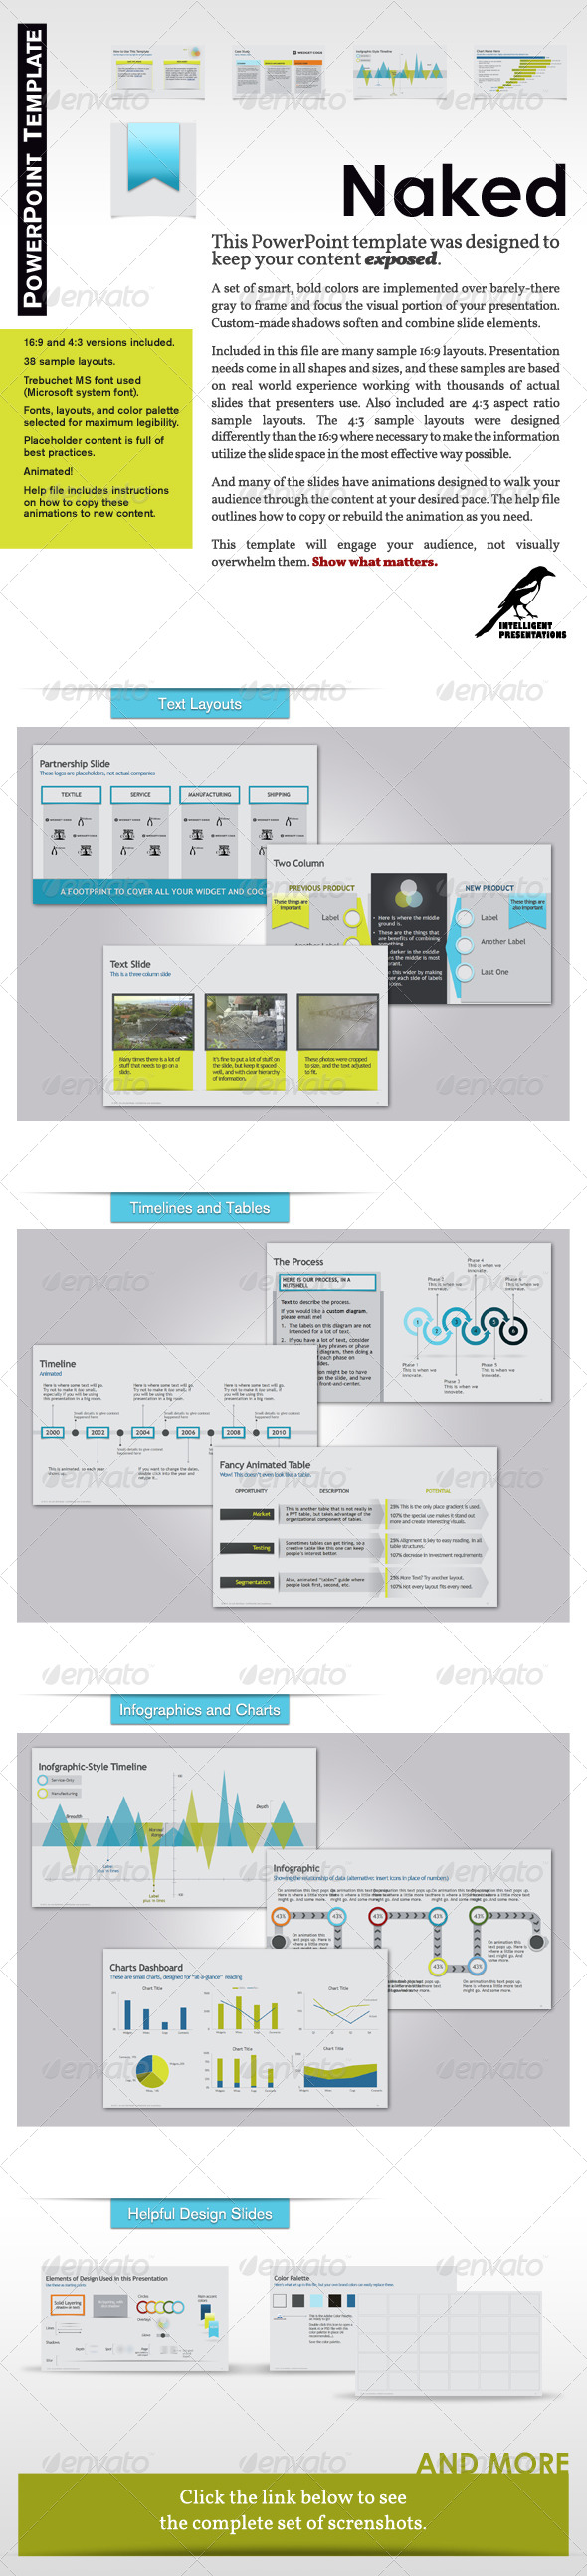 Creative handouts templates stock for Powerpoint handout template